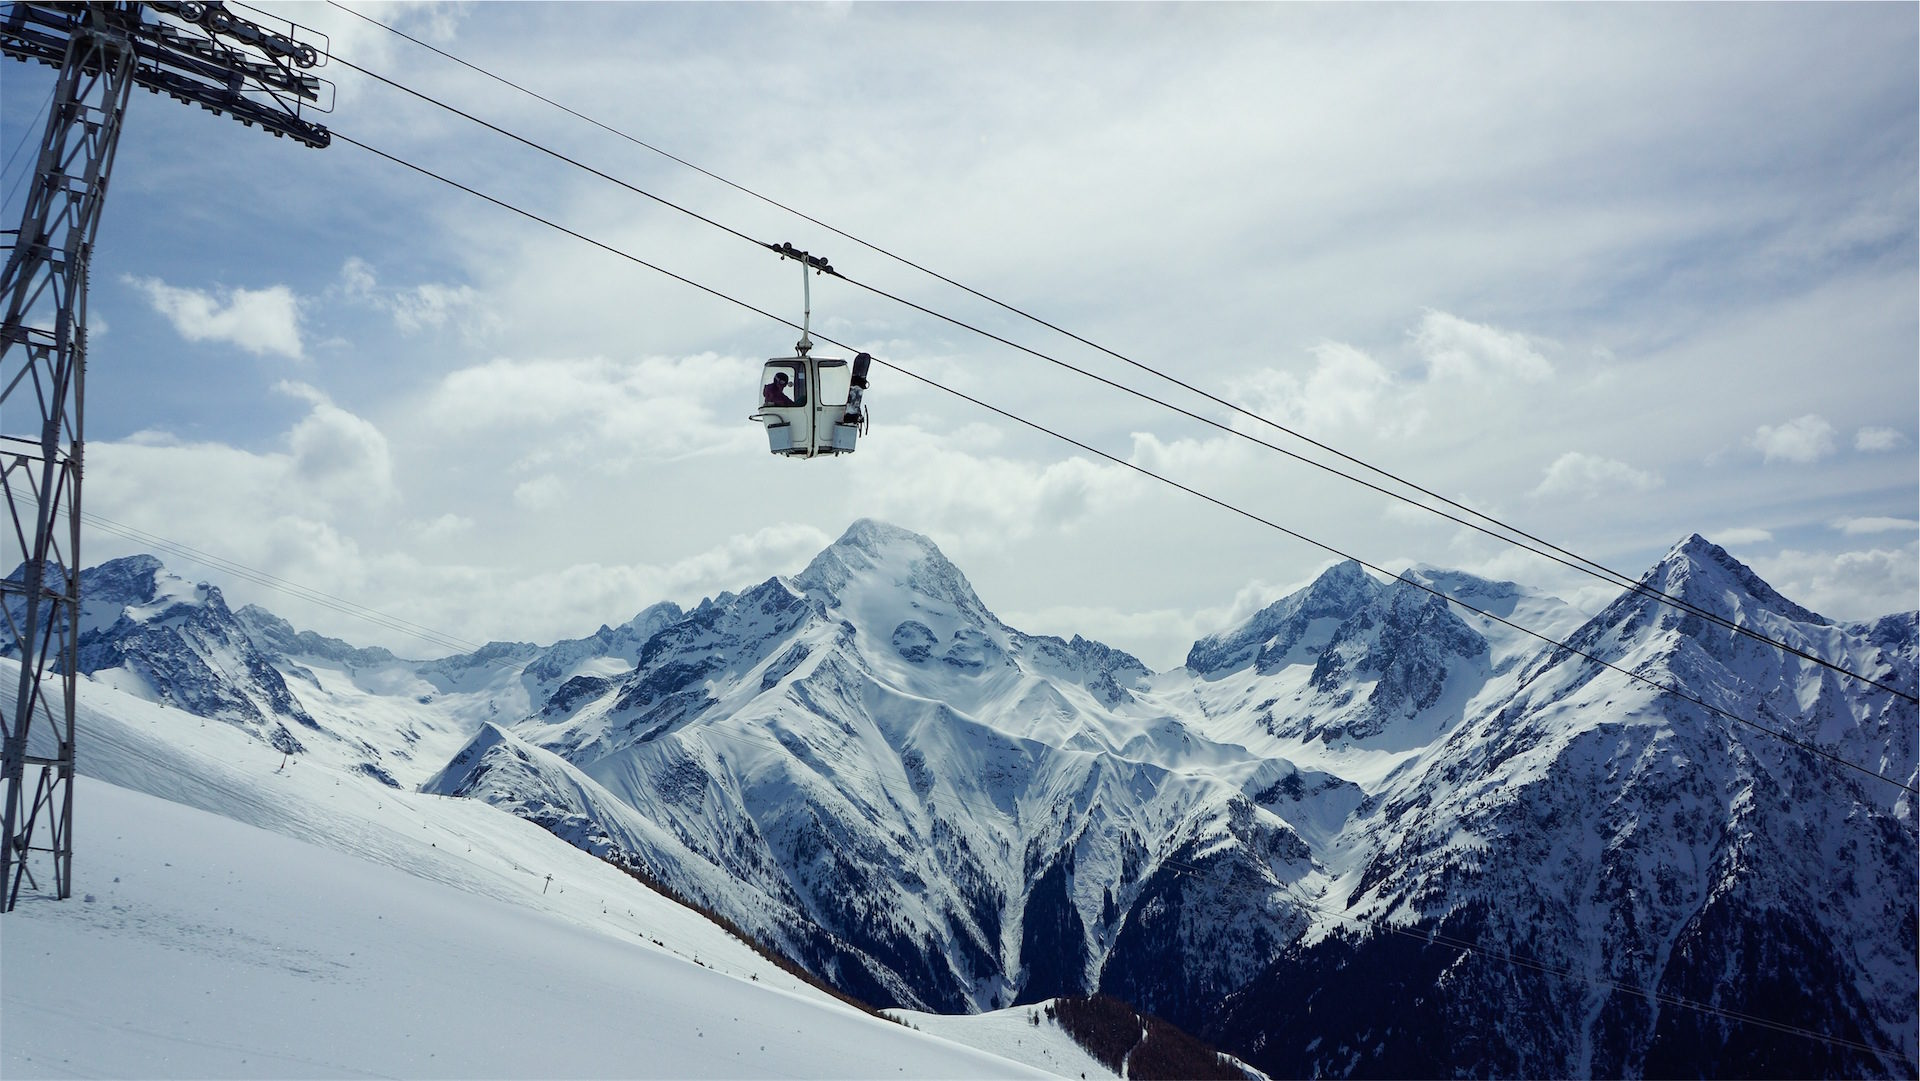 Seilbahn, Berg, Schnee, Pizza, Winter - Wallpaper HD - Prof.-falken.com